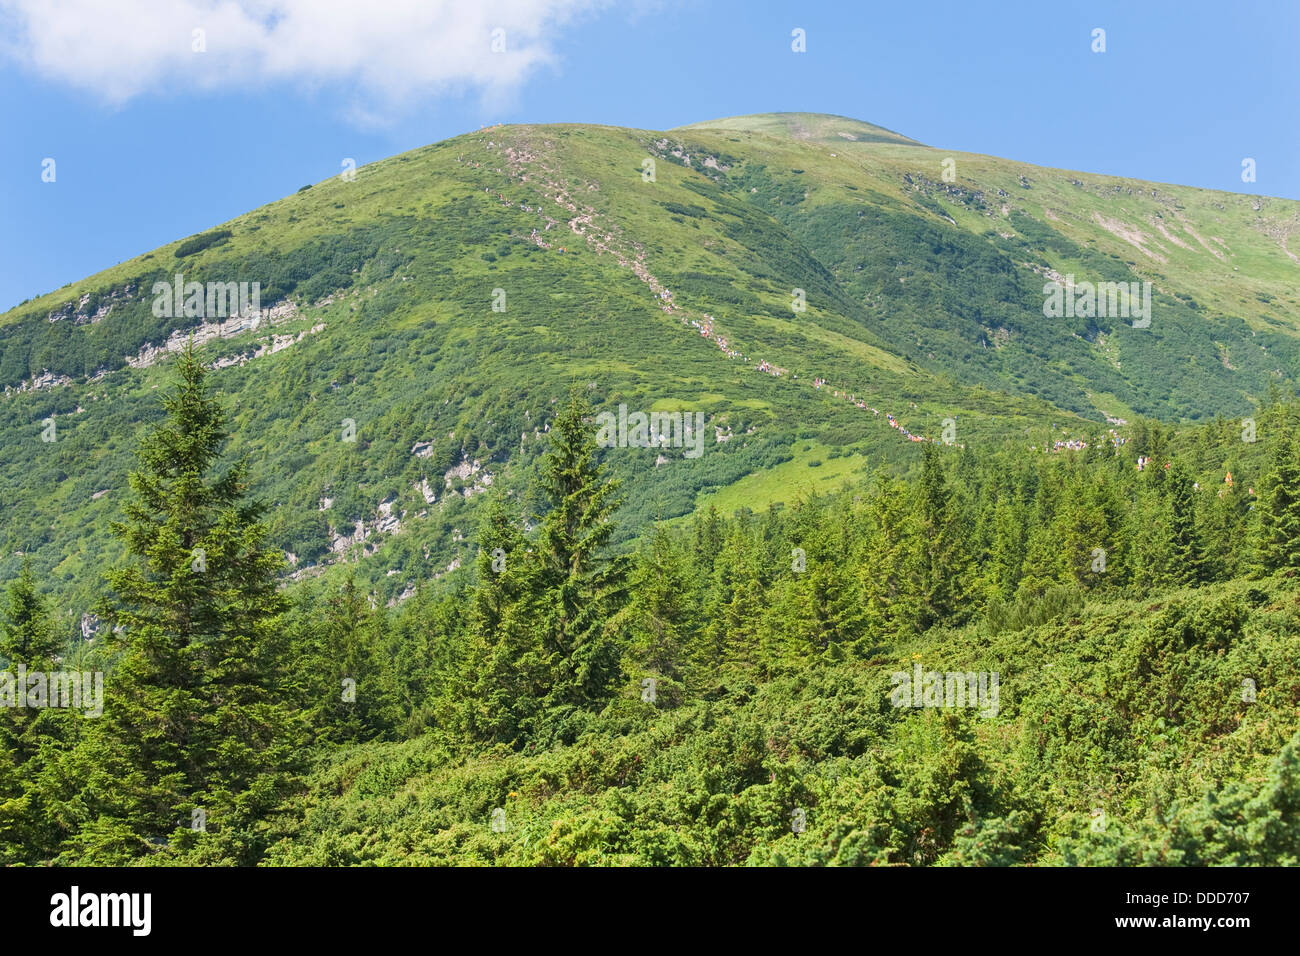 Summer mountain view with conifer forest - Stock Image